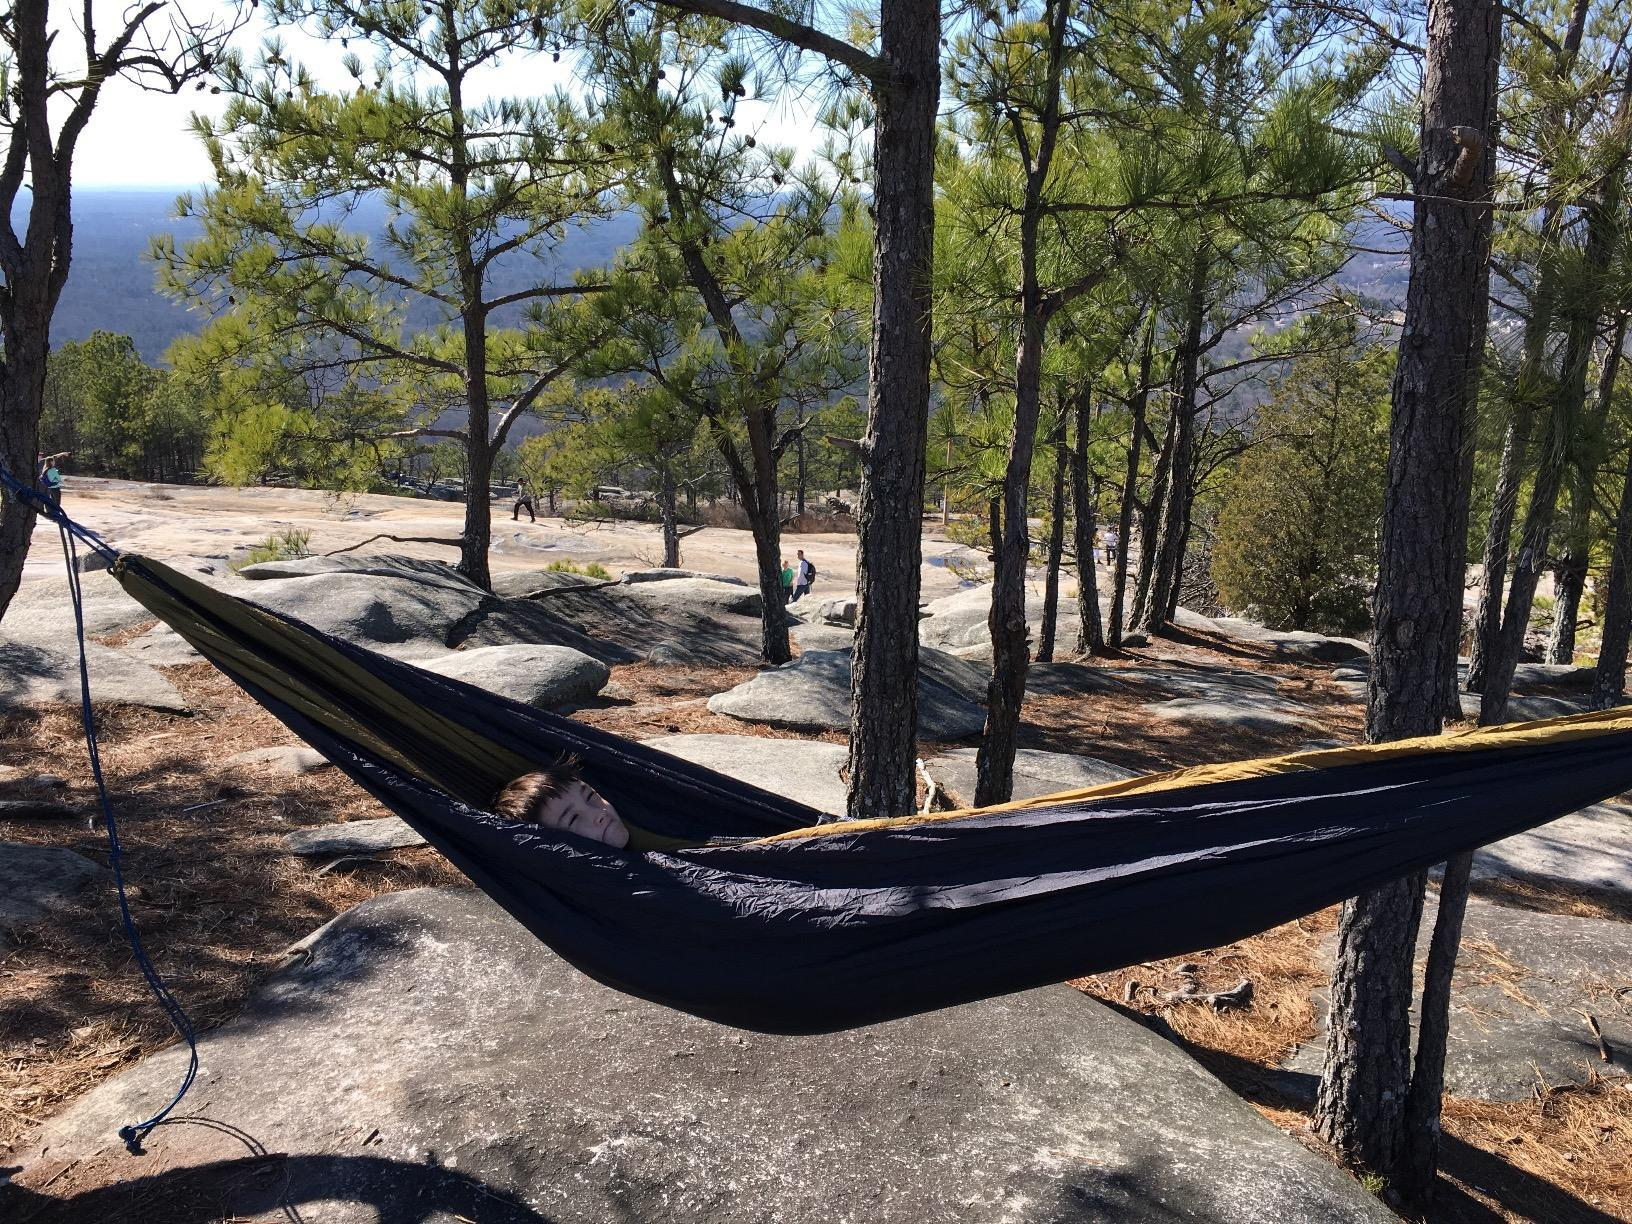 Winner Outfitters Double Camping Hammock-Setup was easy and it comfortably supported me